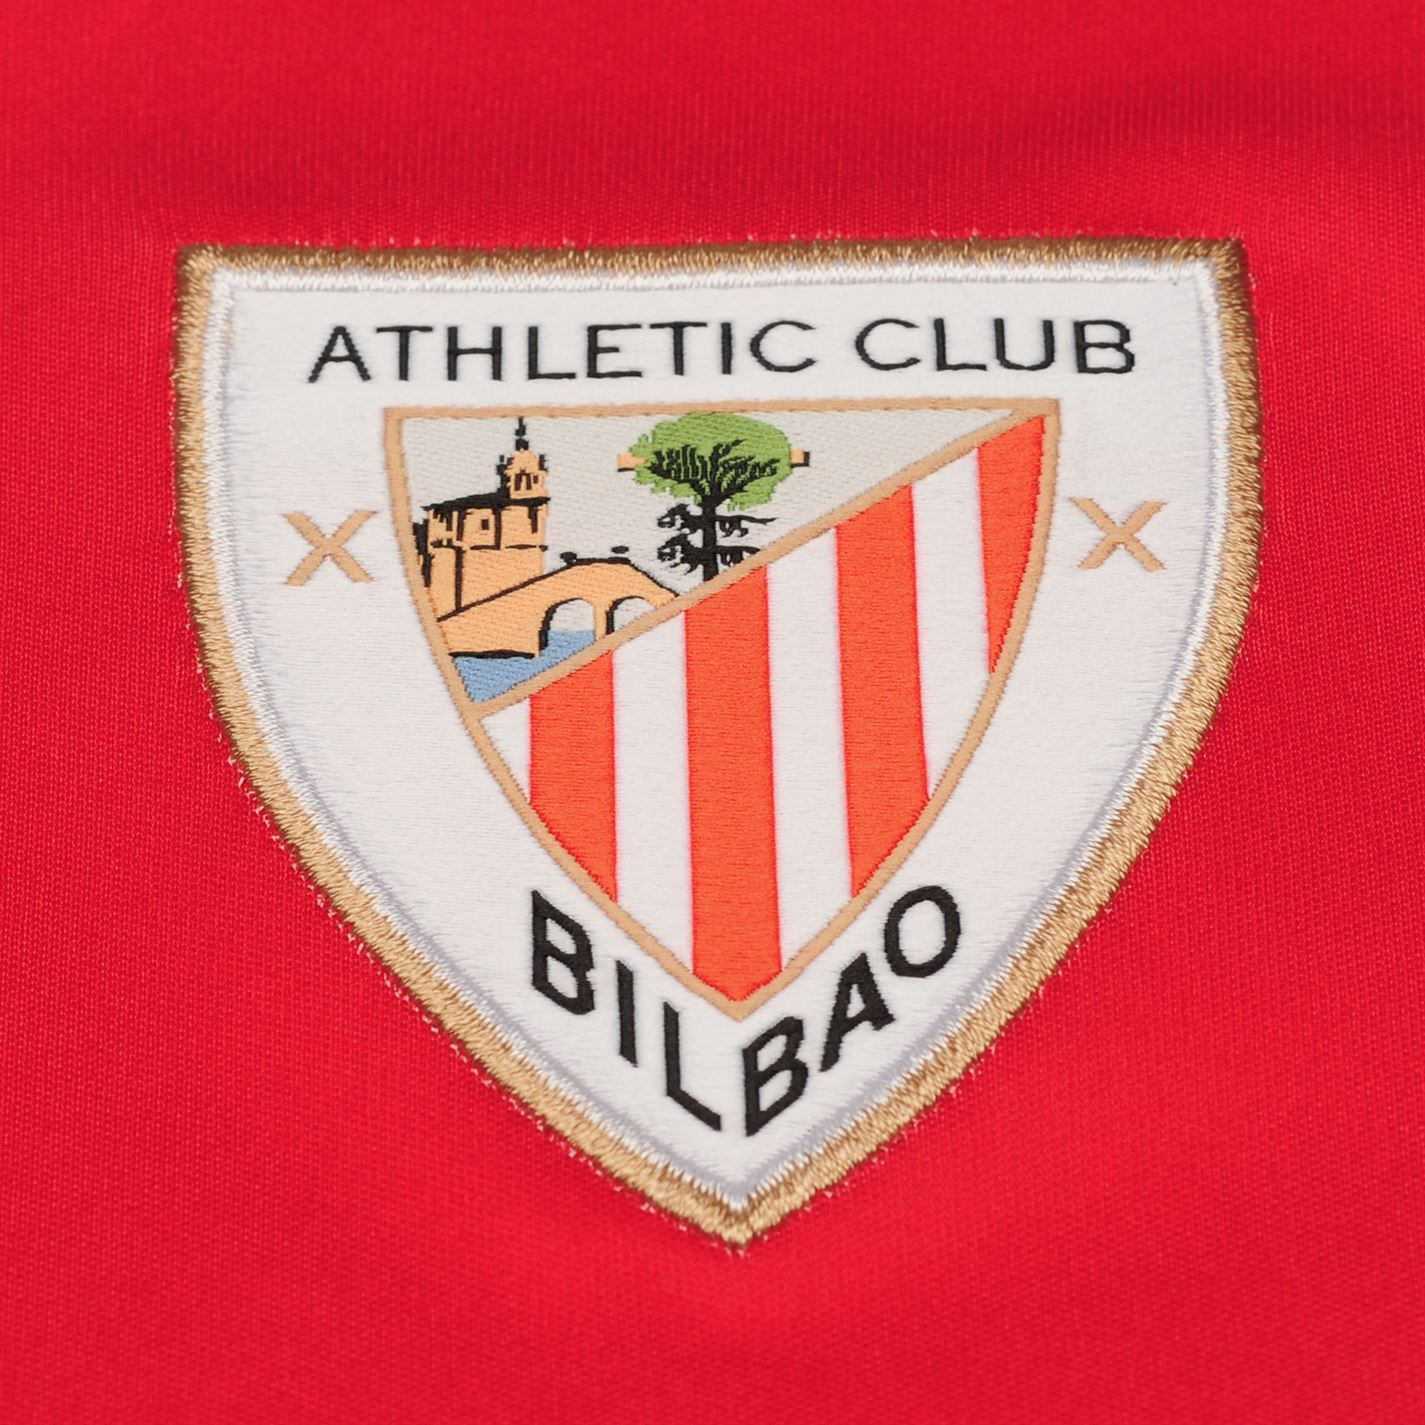 7bba39d8905f4 ... New Balance Athletic Bilbao Home Jersey 2018-19 Mens Red Football  Soccer Shirt